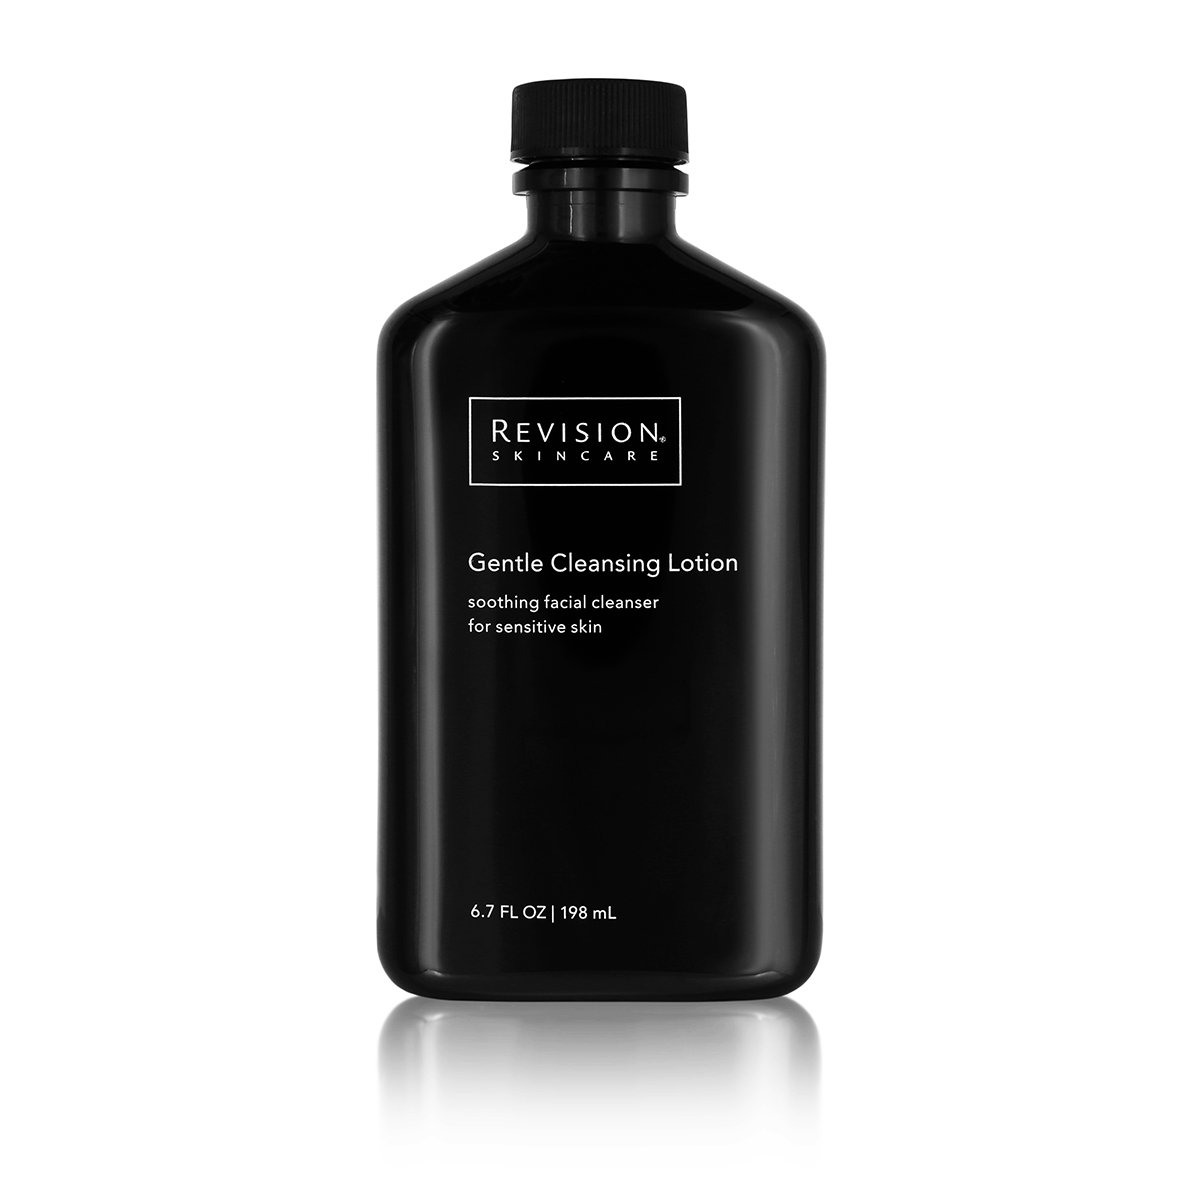 Gentle Cleansing Lotion revision skincare